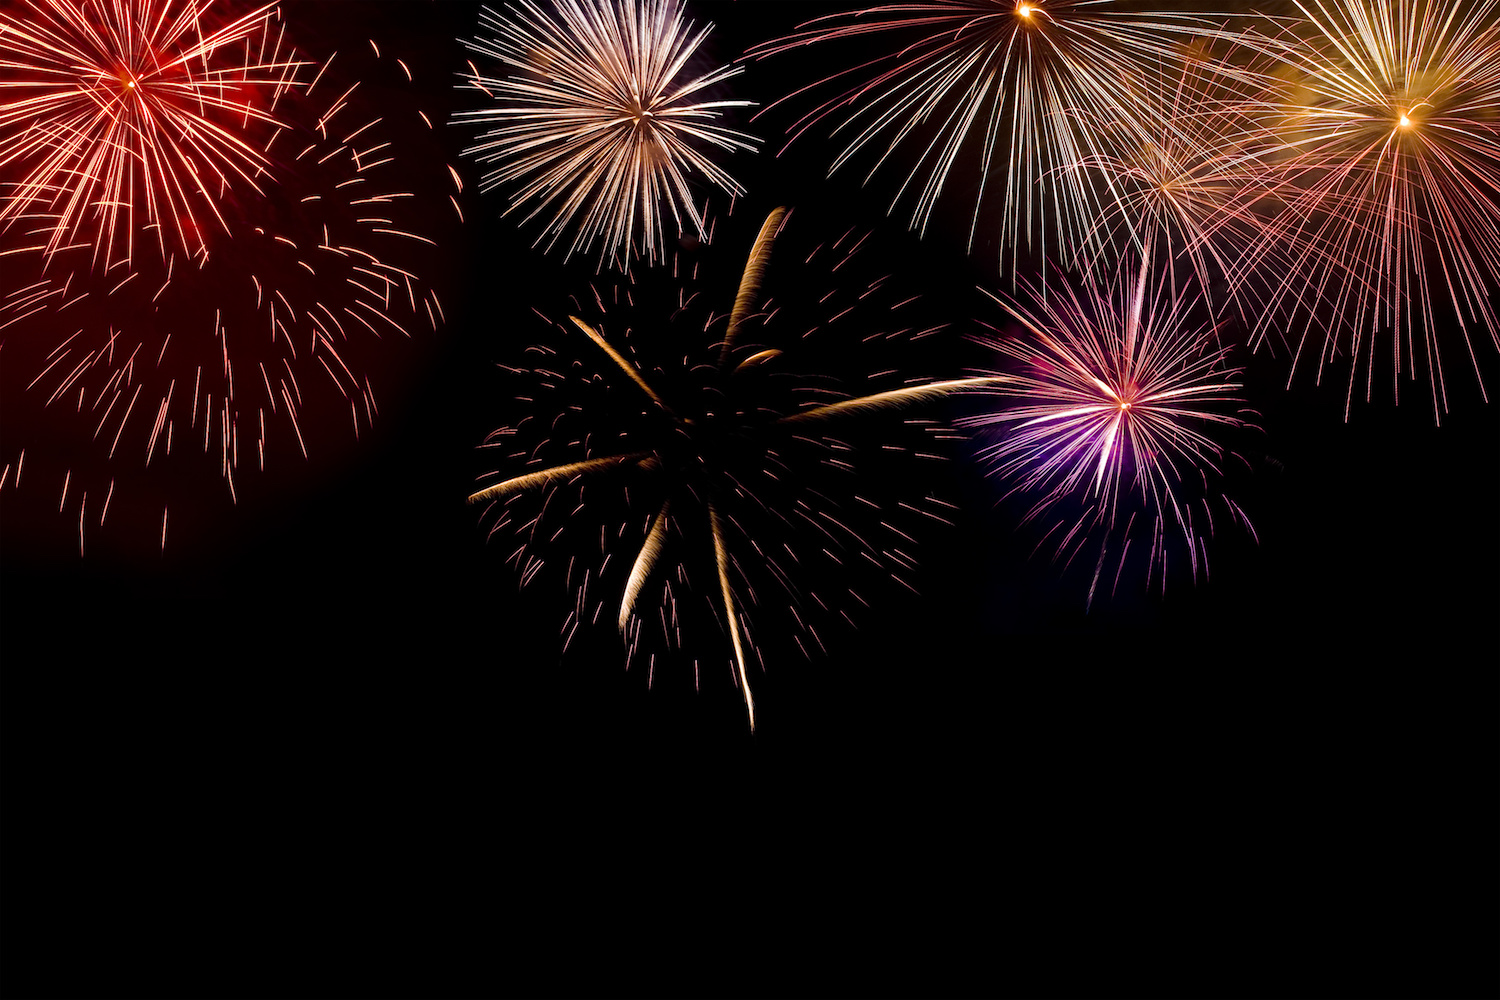 Multiple brightly coloured fireworks display exploding